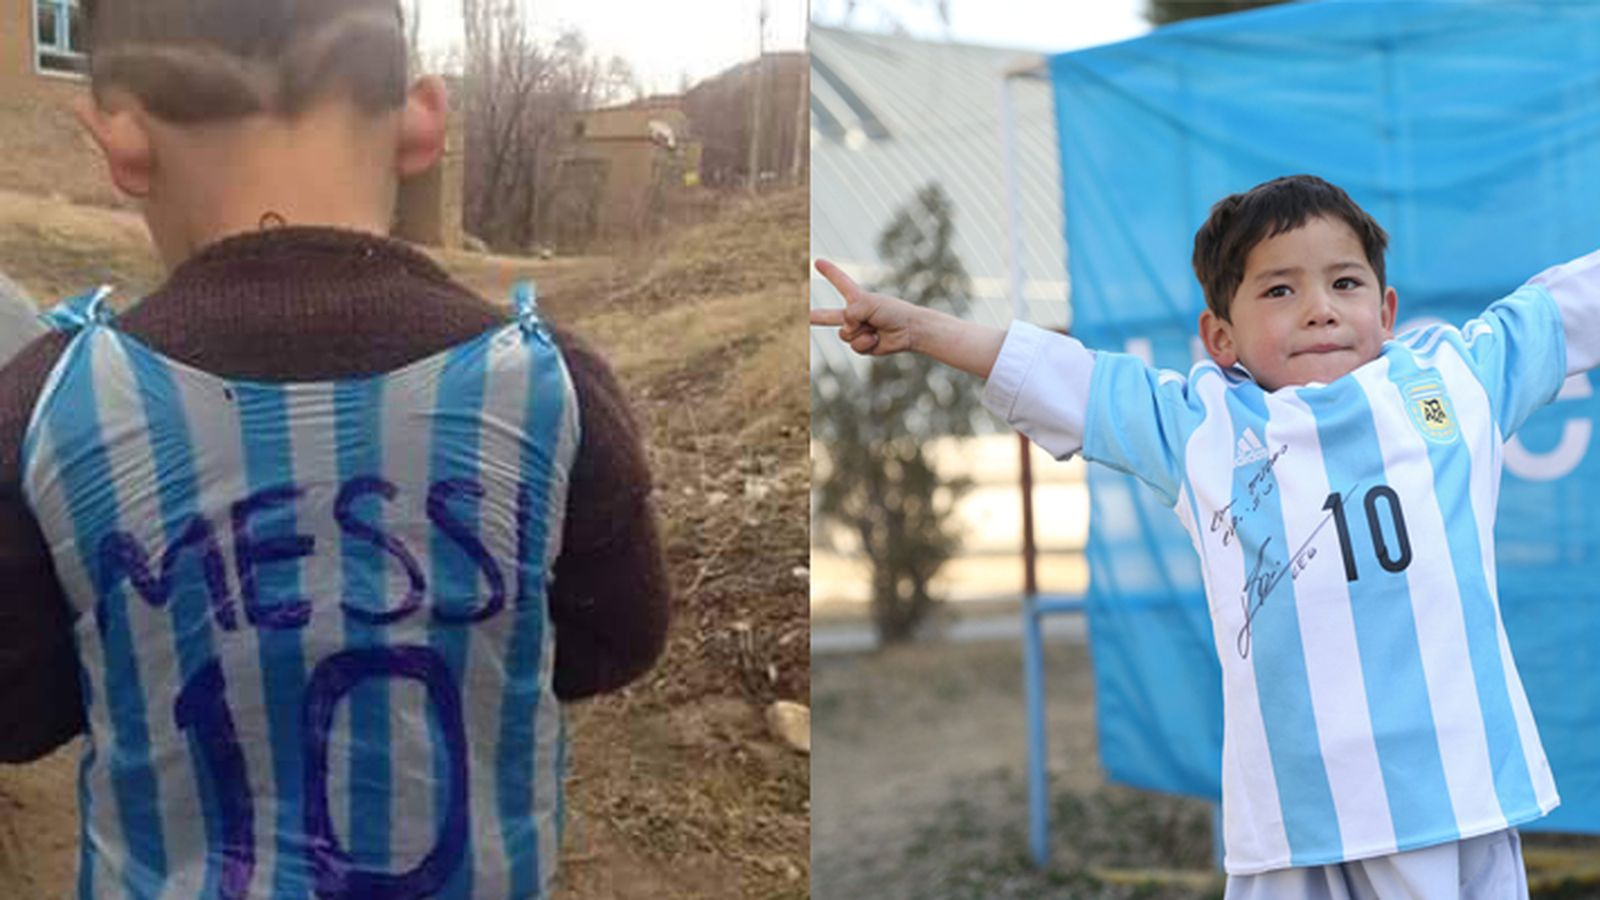 Messi replaces Afghan boy's plastic bag shirt with a real autographed one